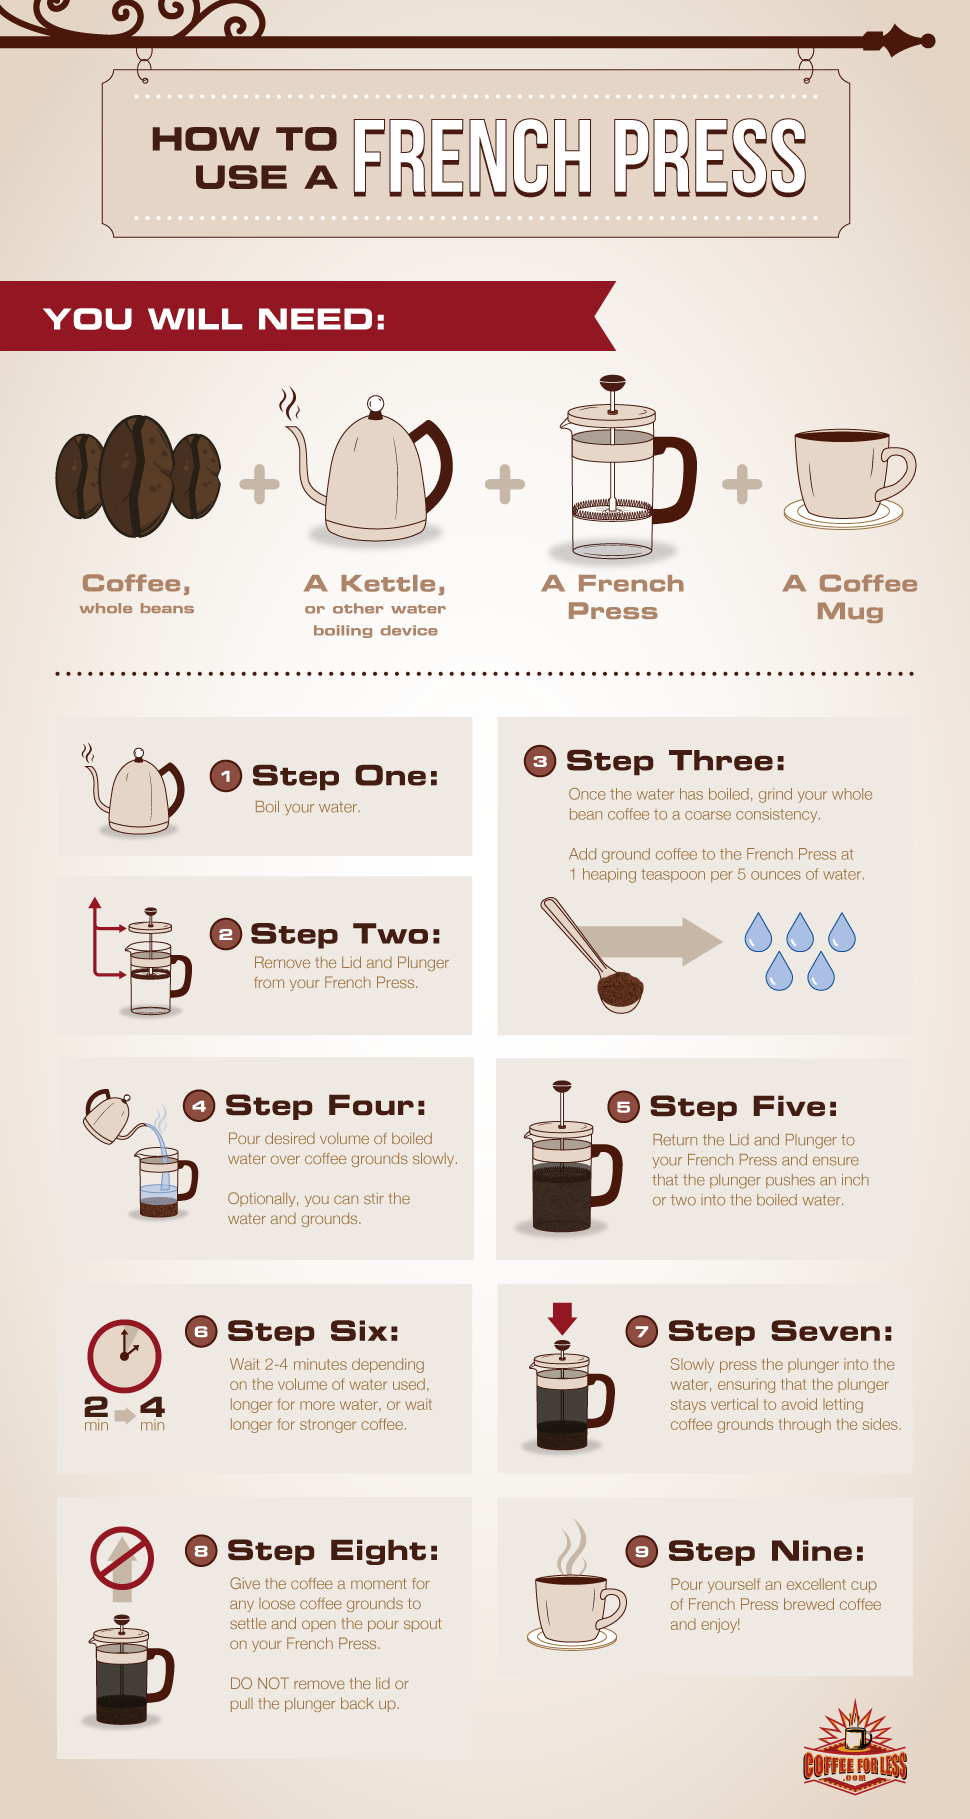 Become a French Press pro in less than 10 steps!